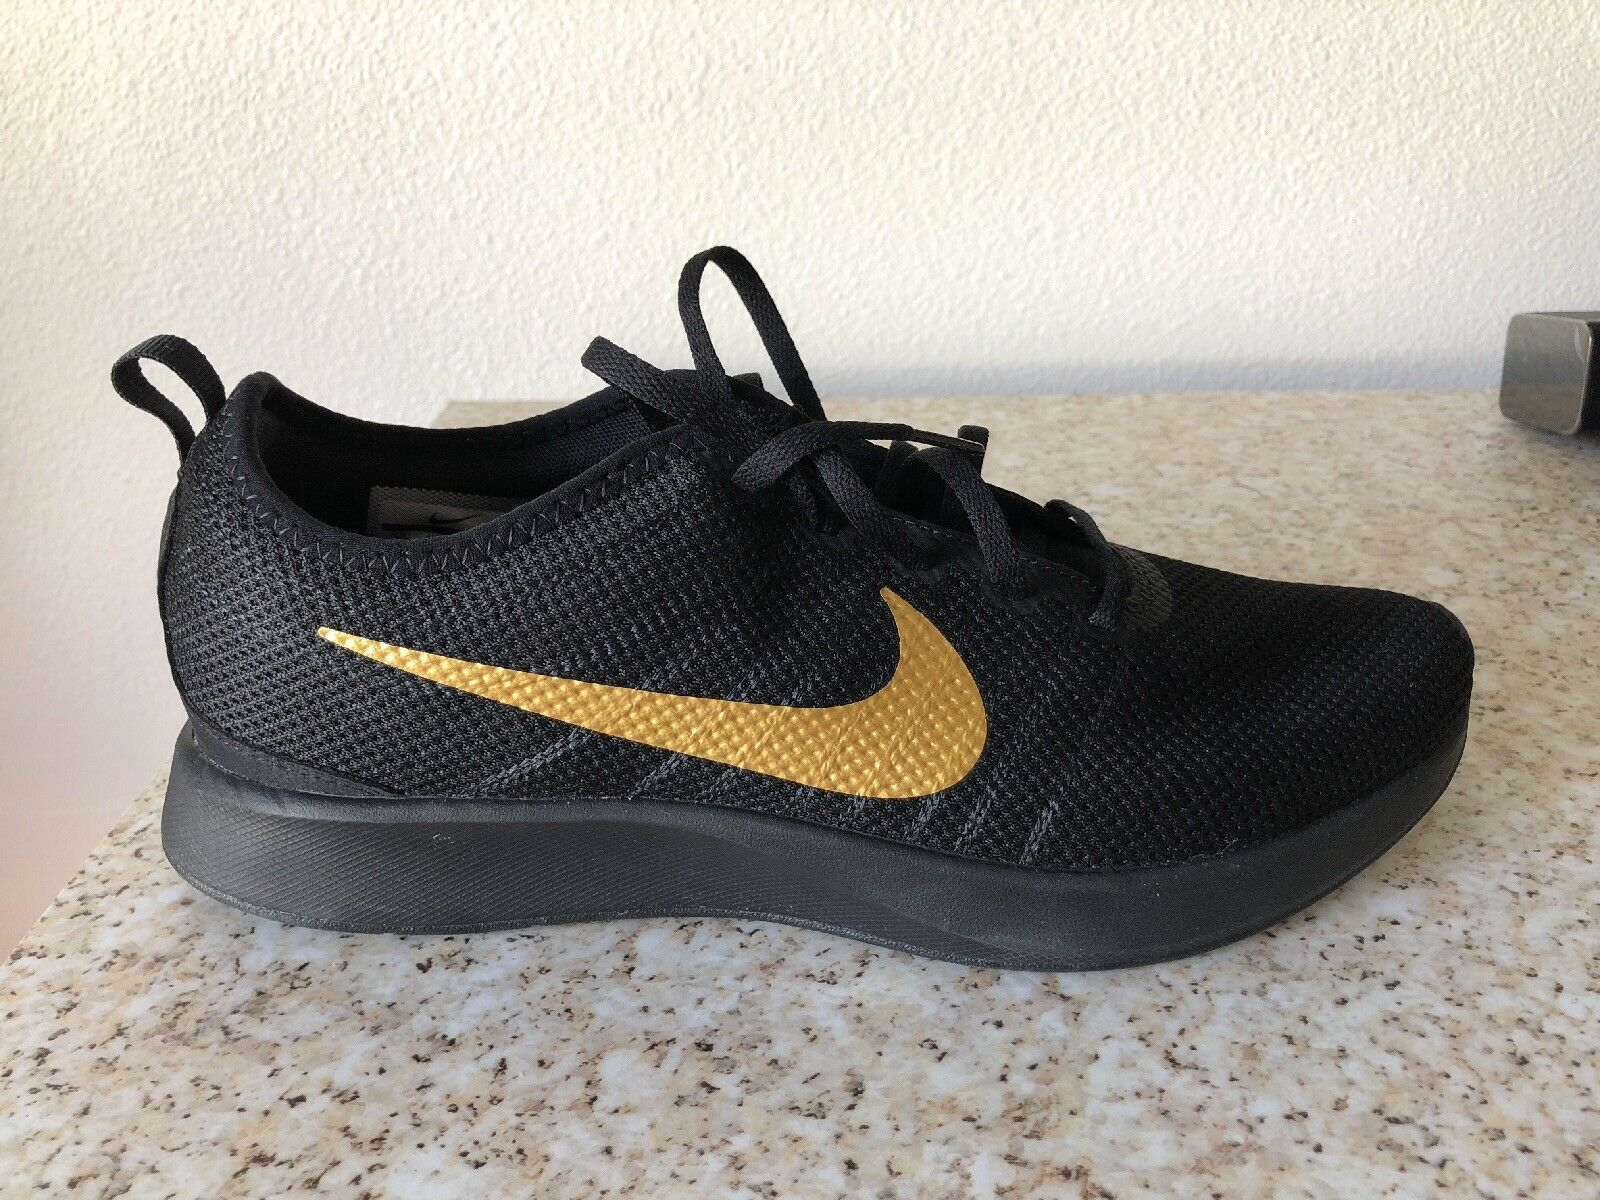 Nike Dualtone Racer Uomo 918227-007 Nero Metallic Gold Running Shoes Size 10